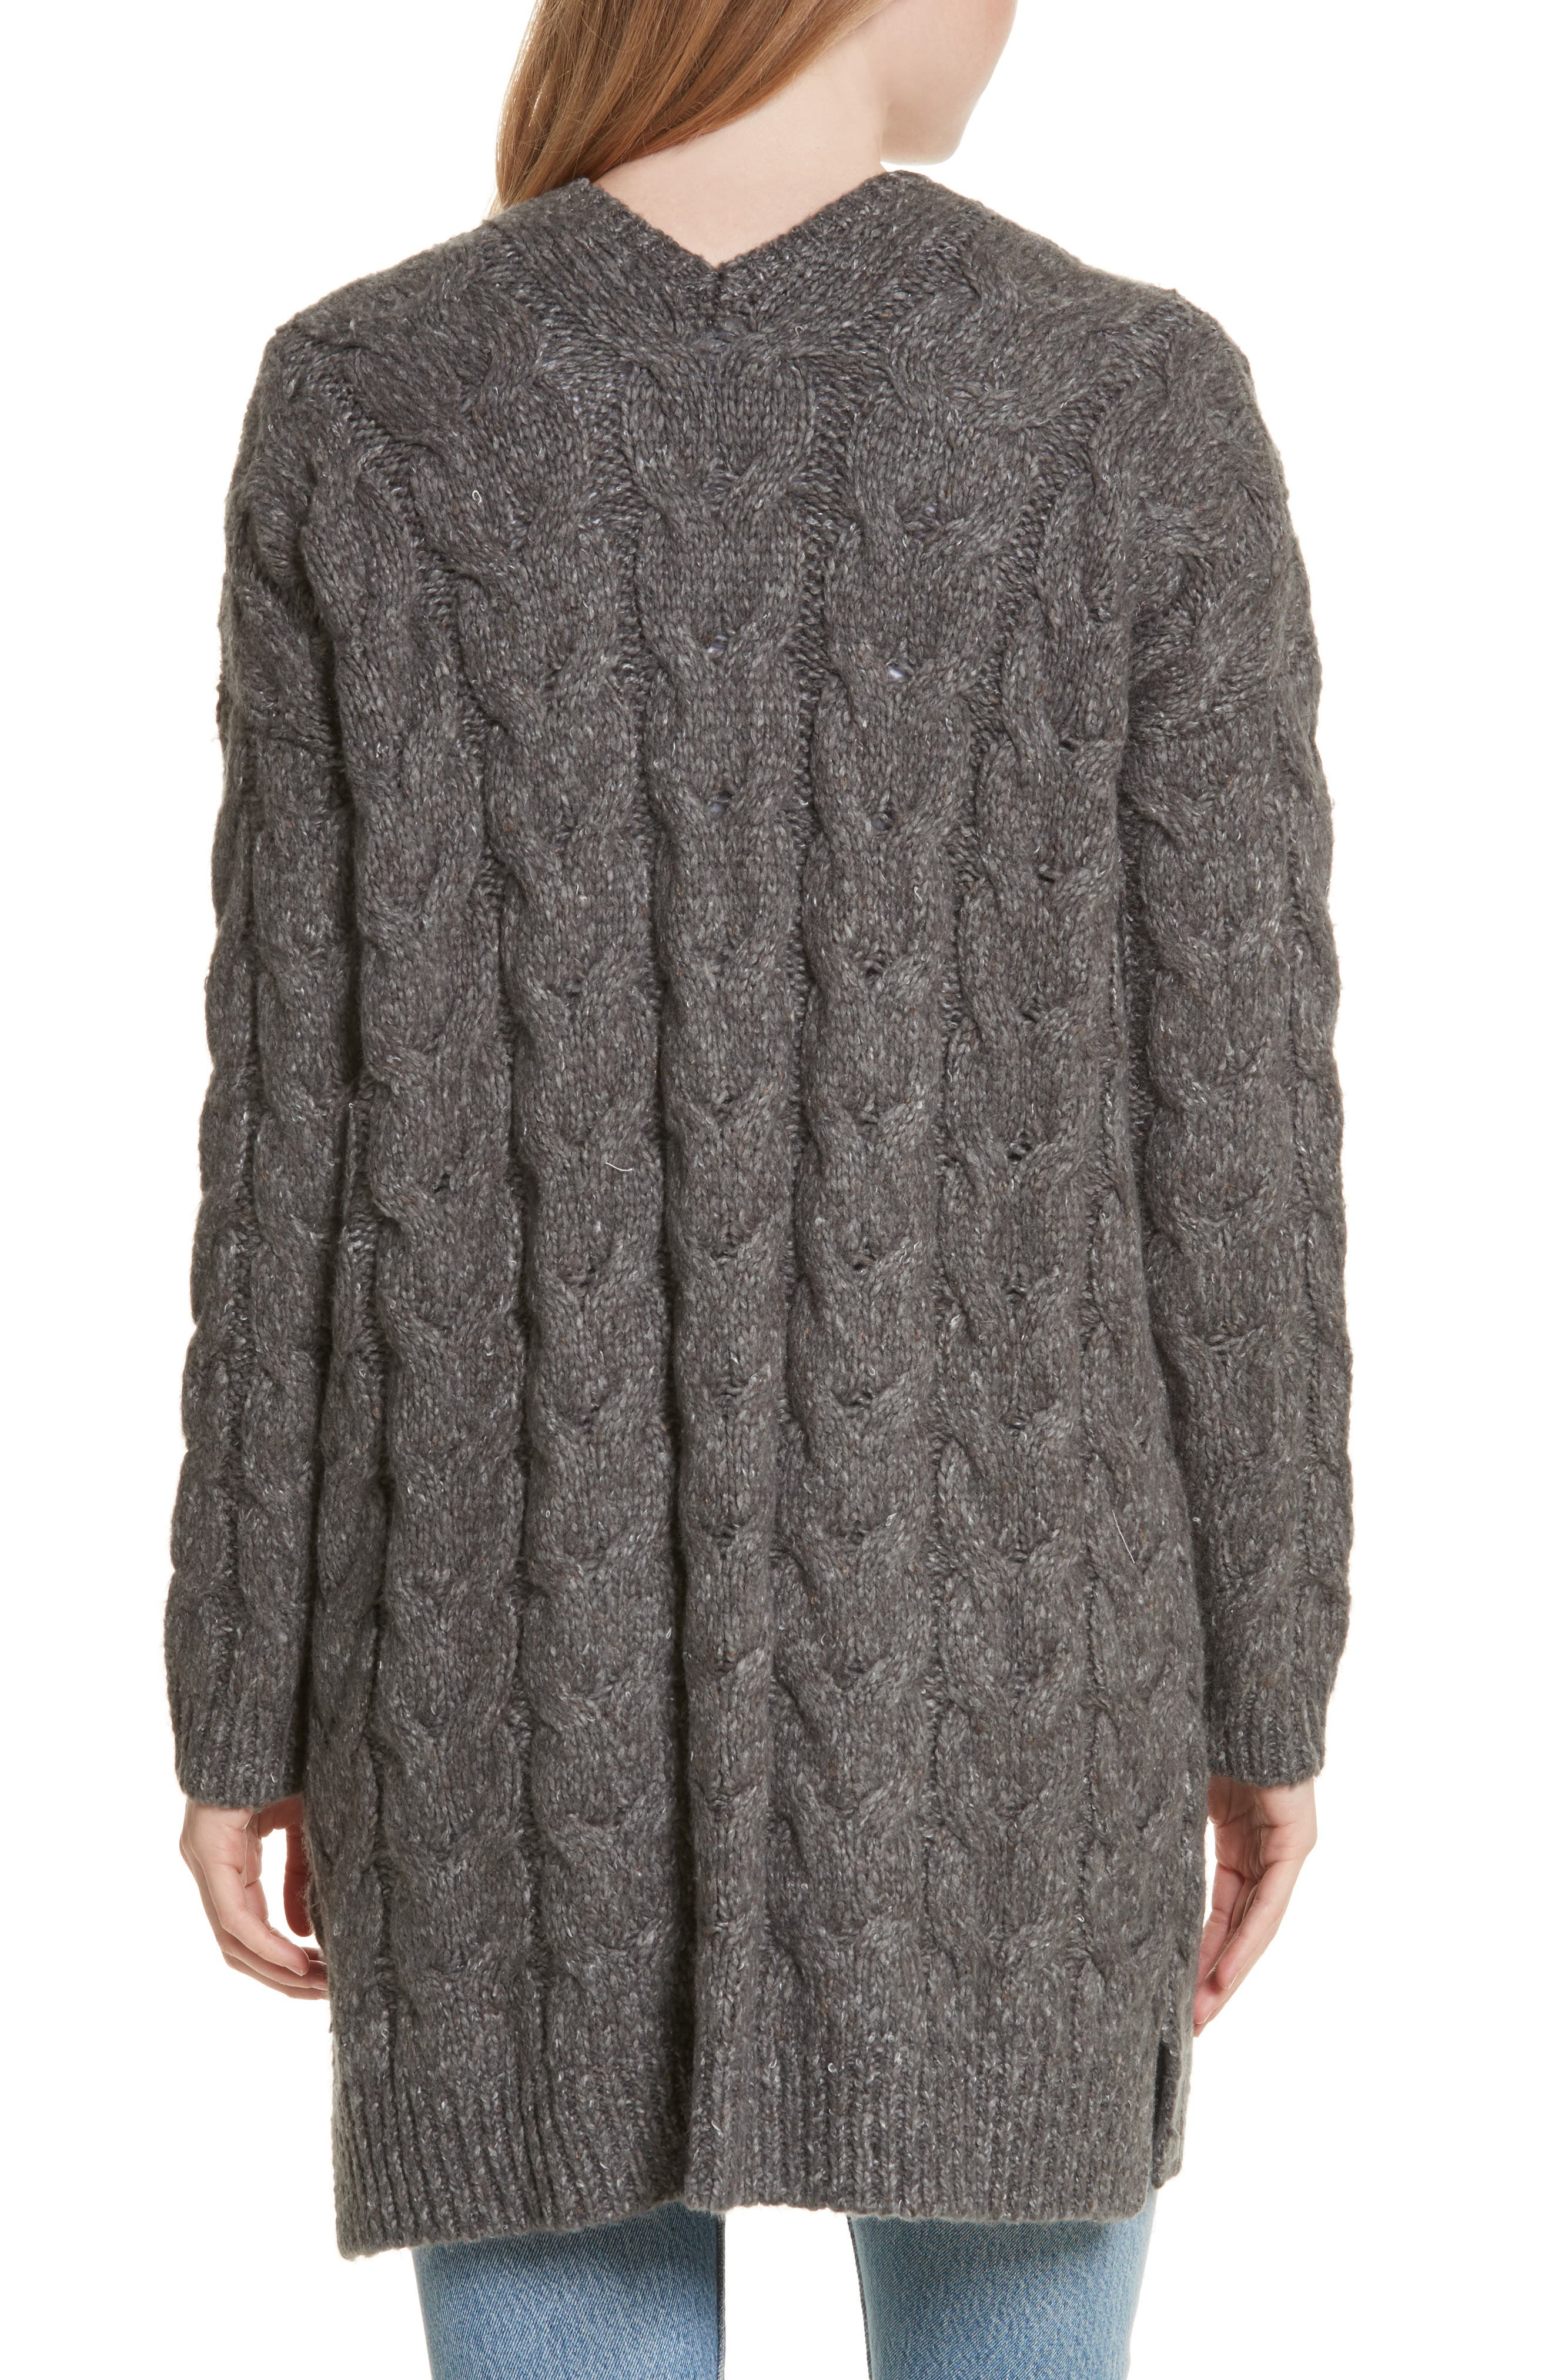 Tienna Cable-Knit Cardigan,                             Alternate thumbnail 2, color,                             Dark Heather Grey